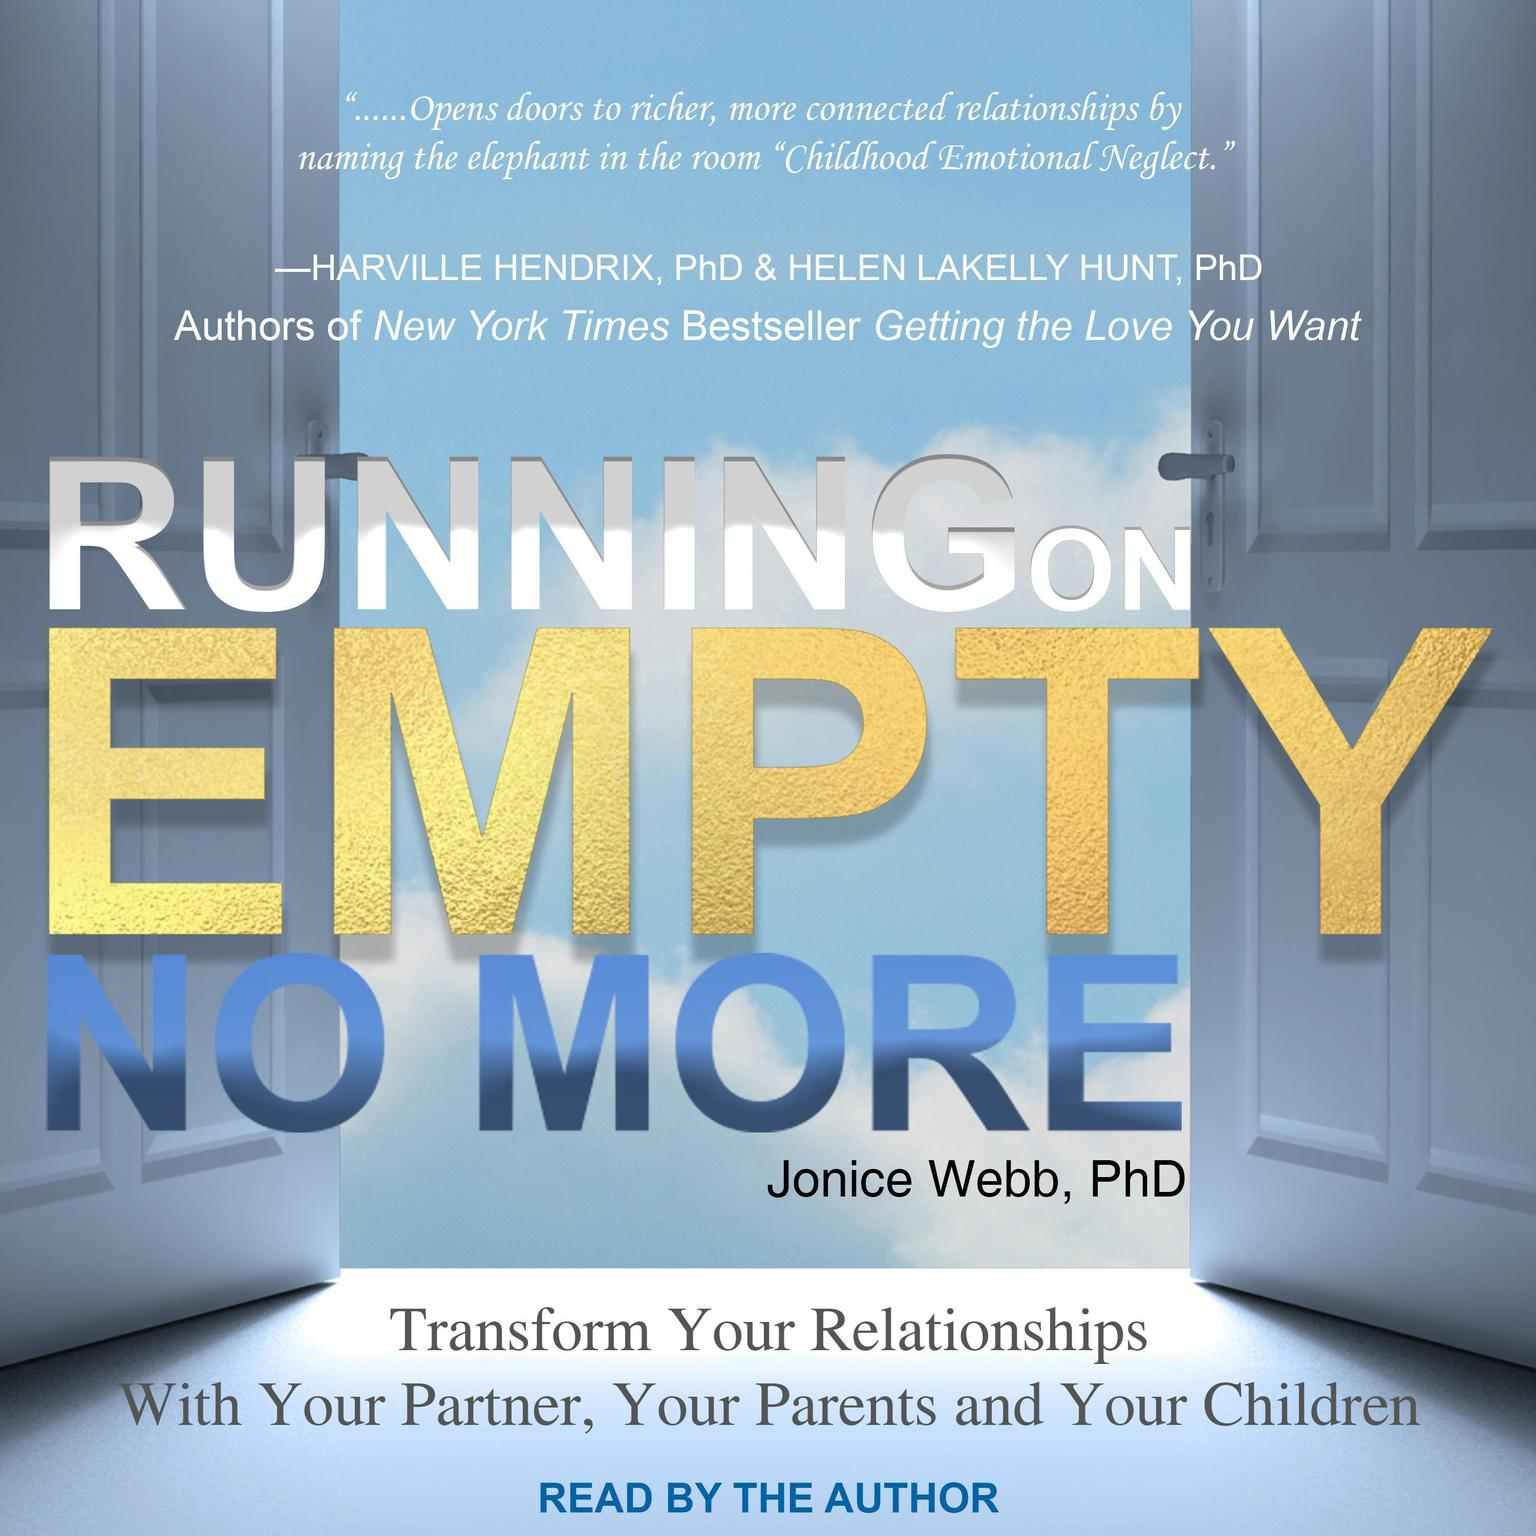 Running on Empty No More: Transform Your Relationships With Your Partner, Your Parents and Your Children Audiobook, by Jonice Webb